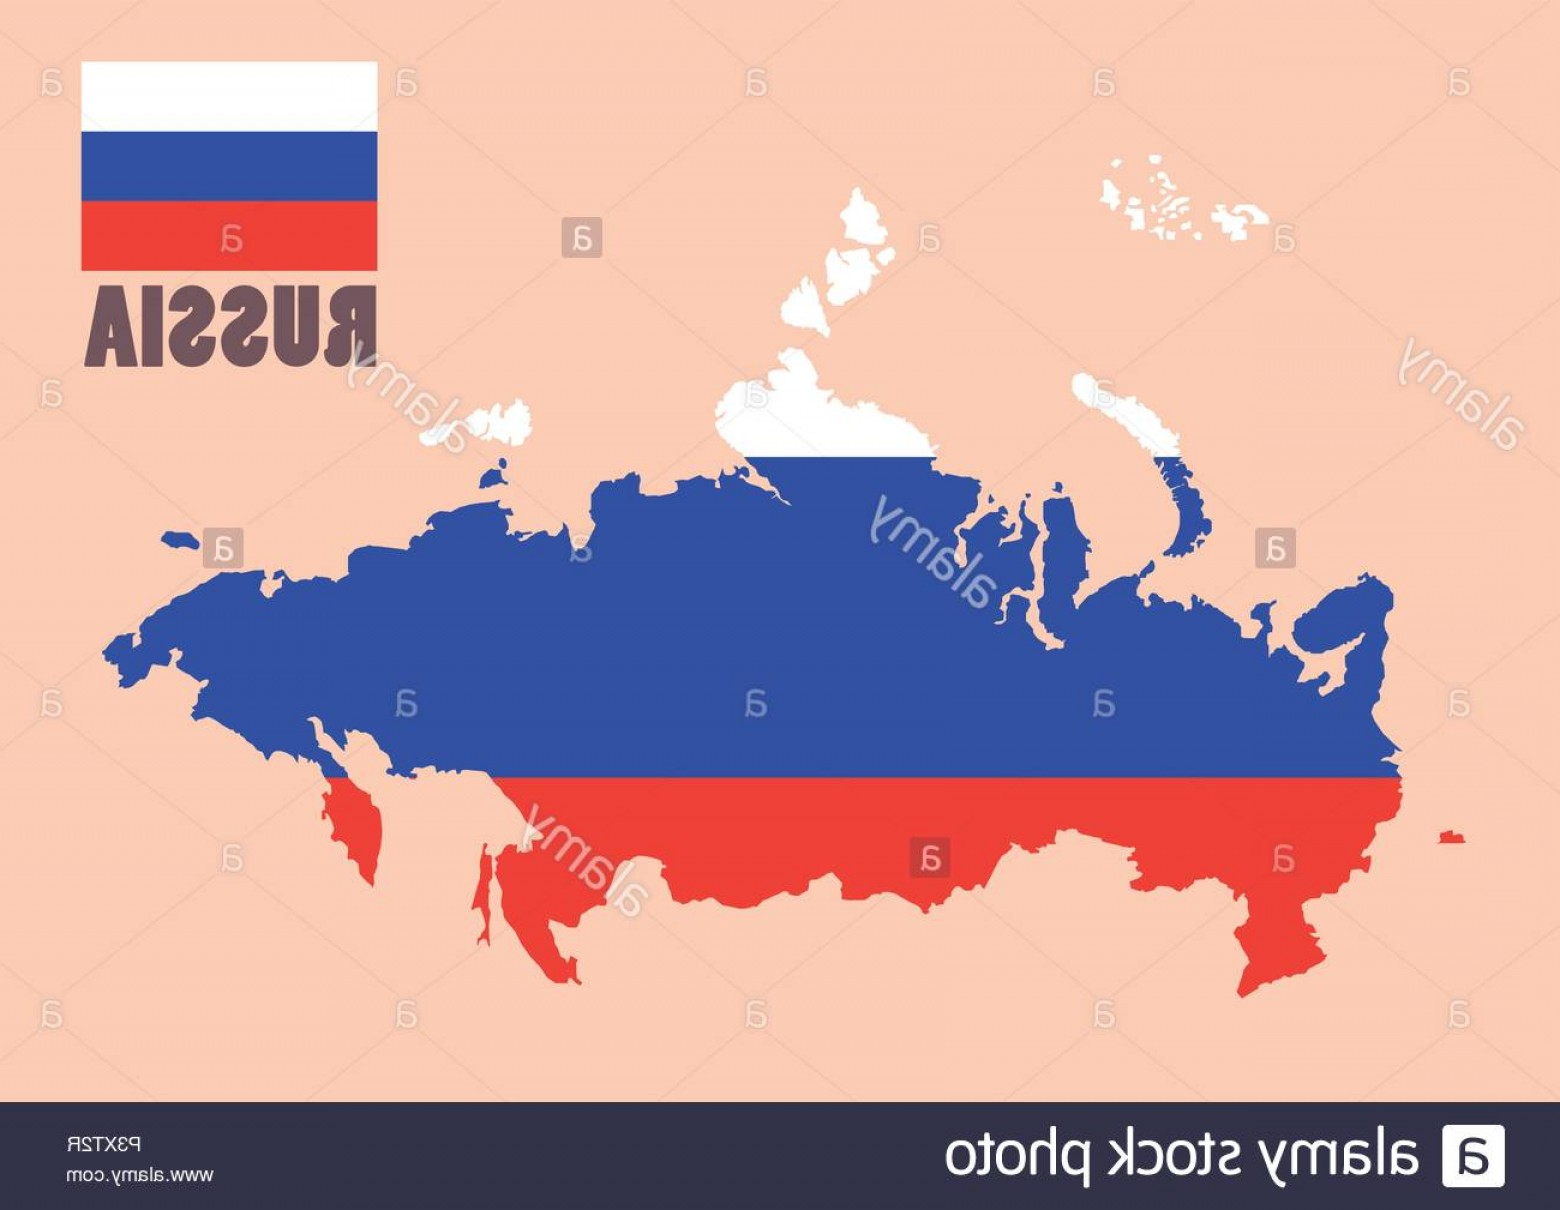 BG Vector Map: Russia Map With Flag Background Vector Illustration Image